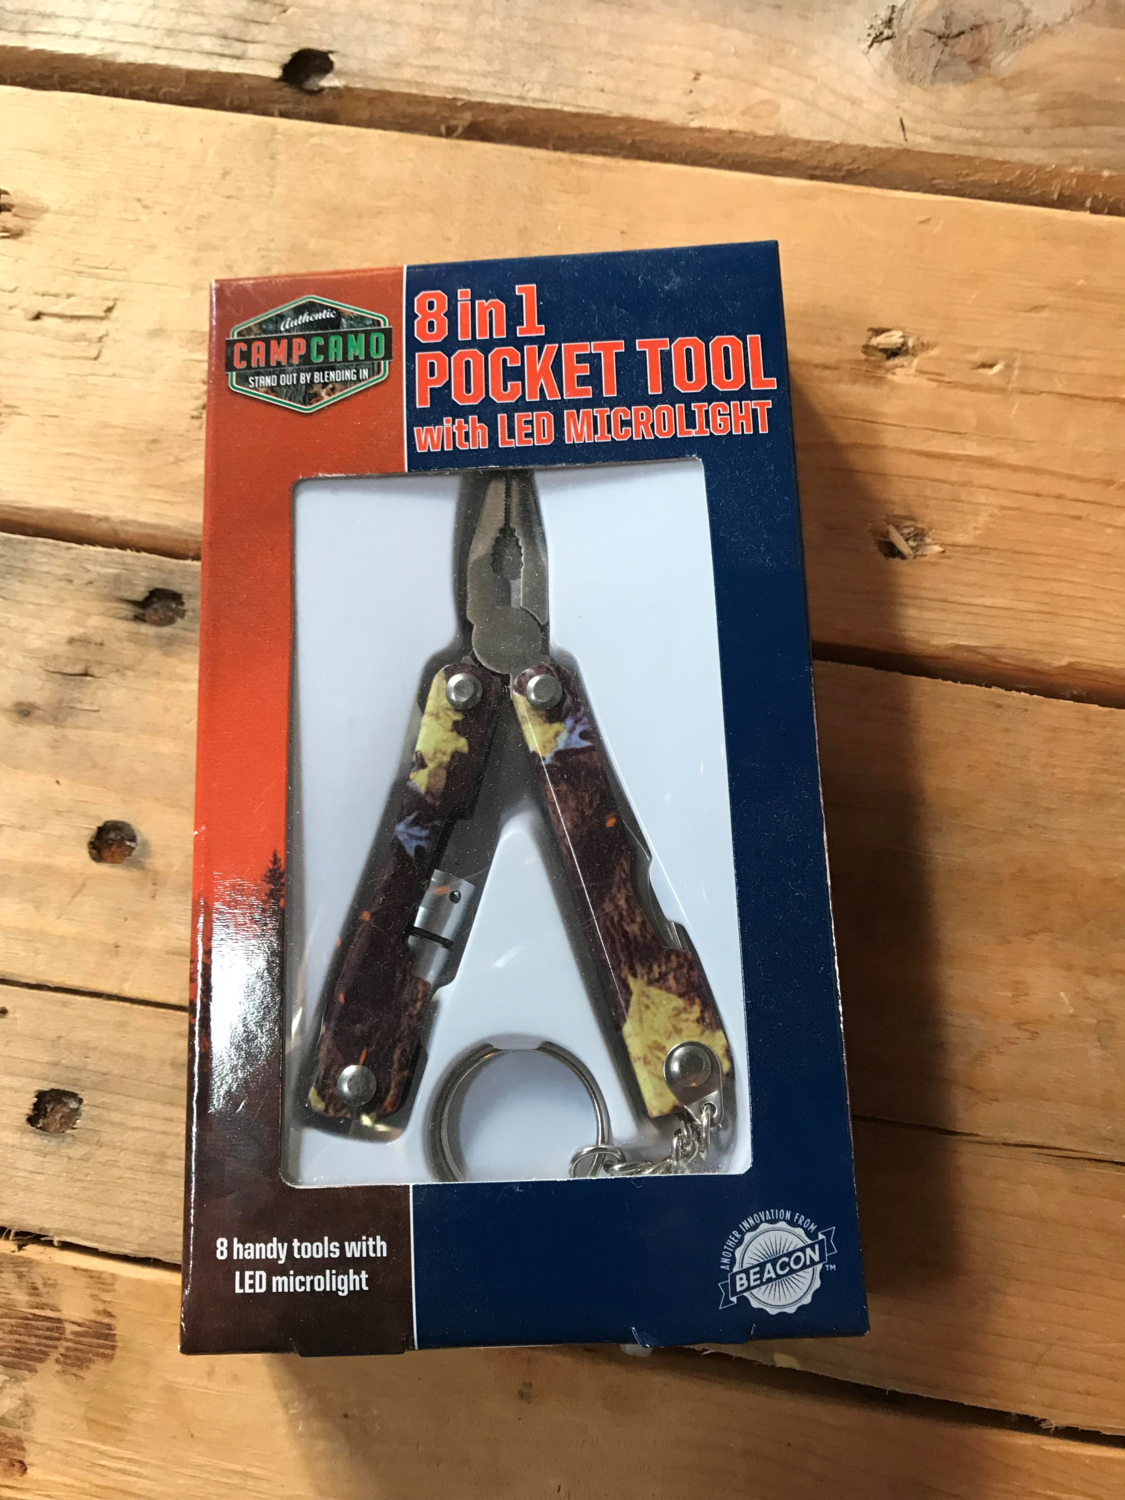 8-in1 Pocket Tool With LED Microlight